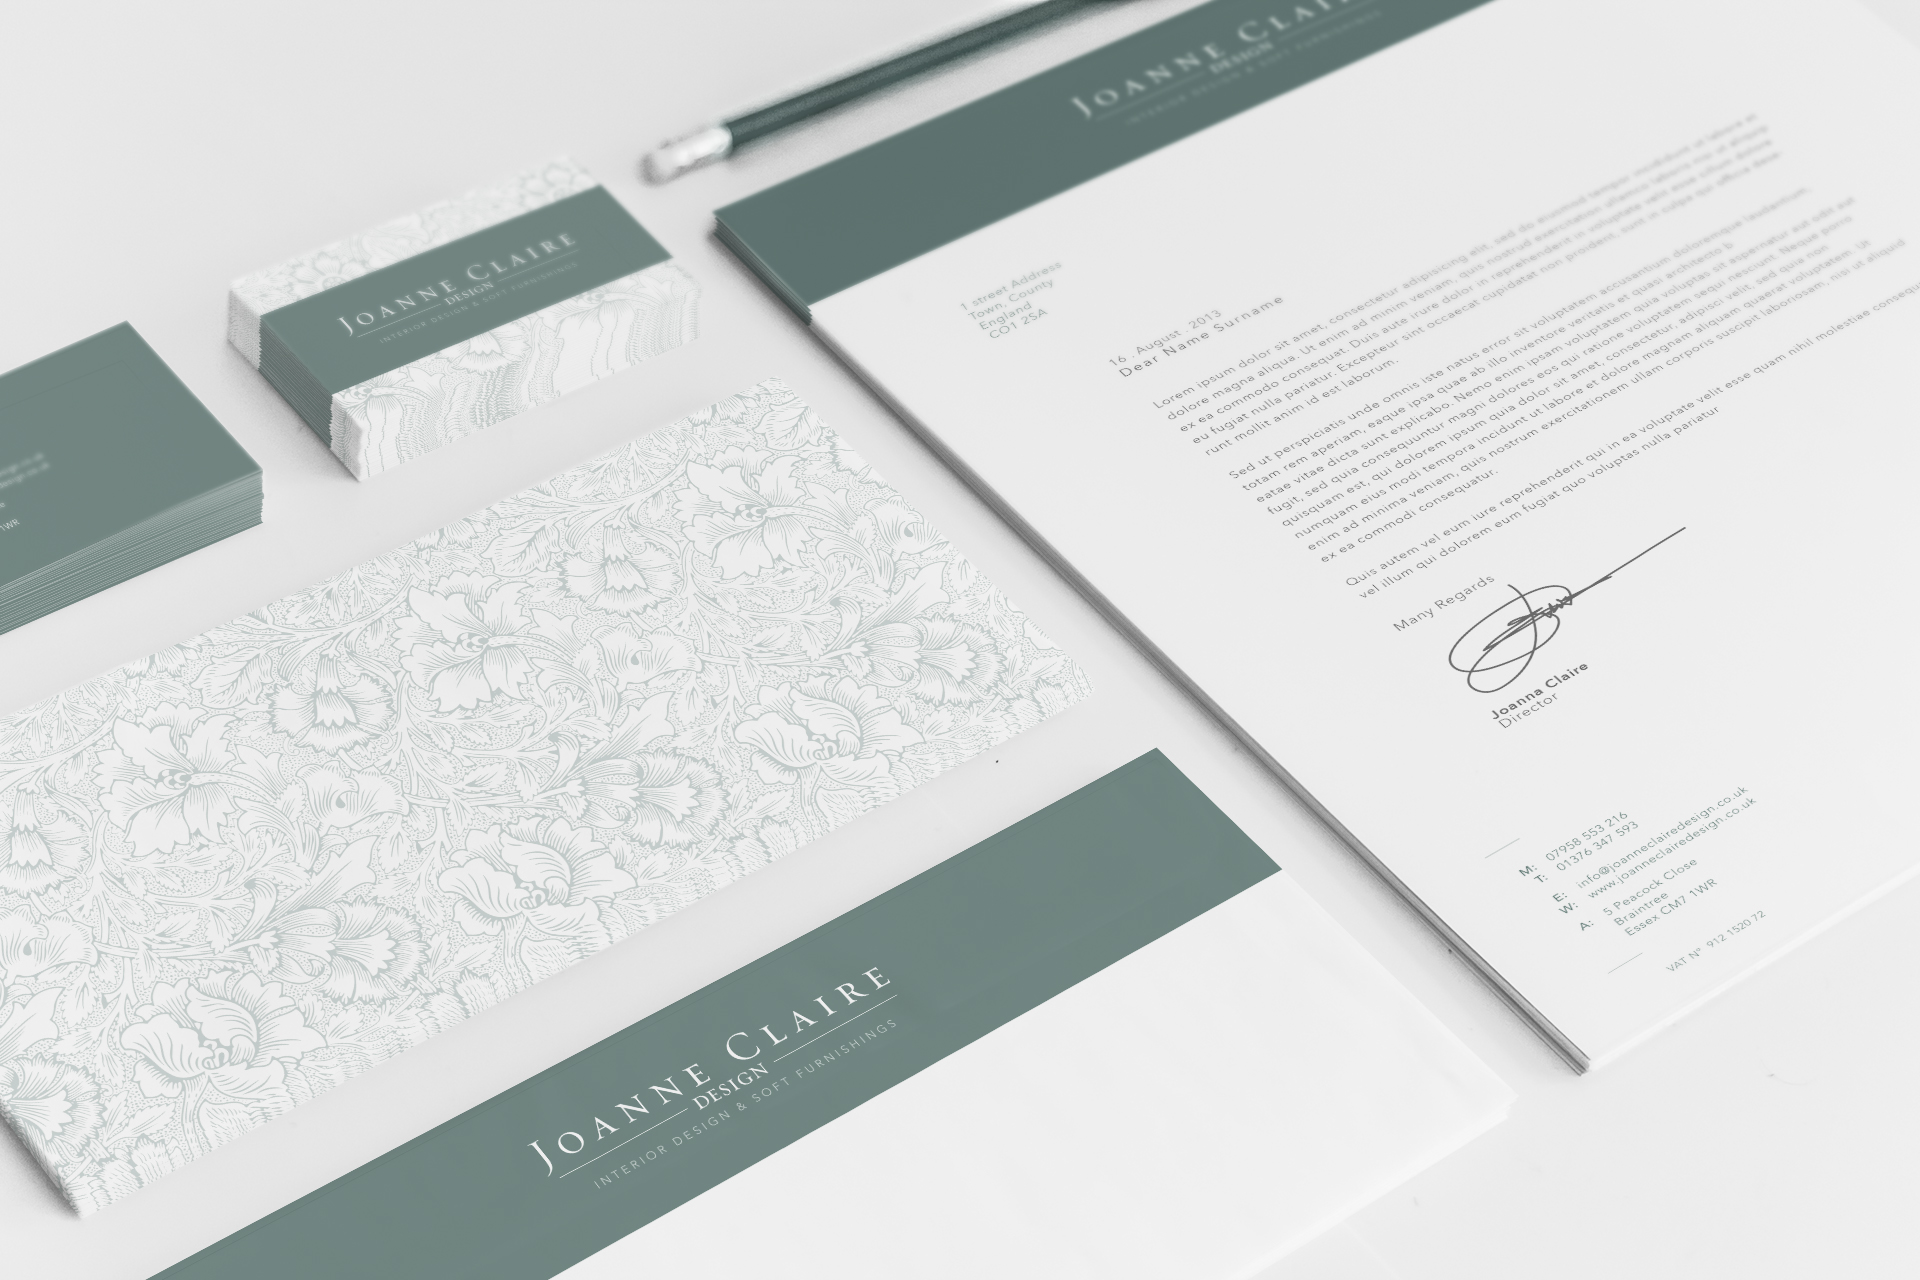 Joanne Claire Design \ Stationery Design & Print